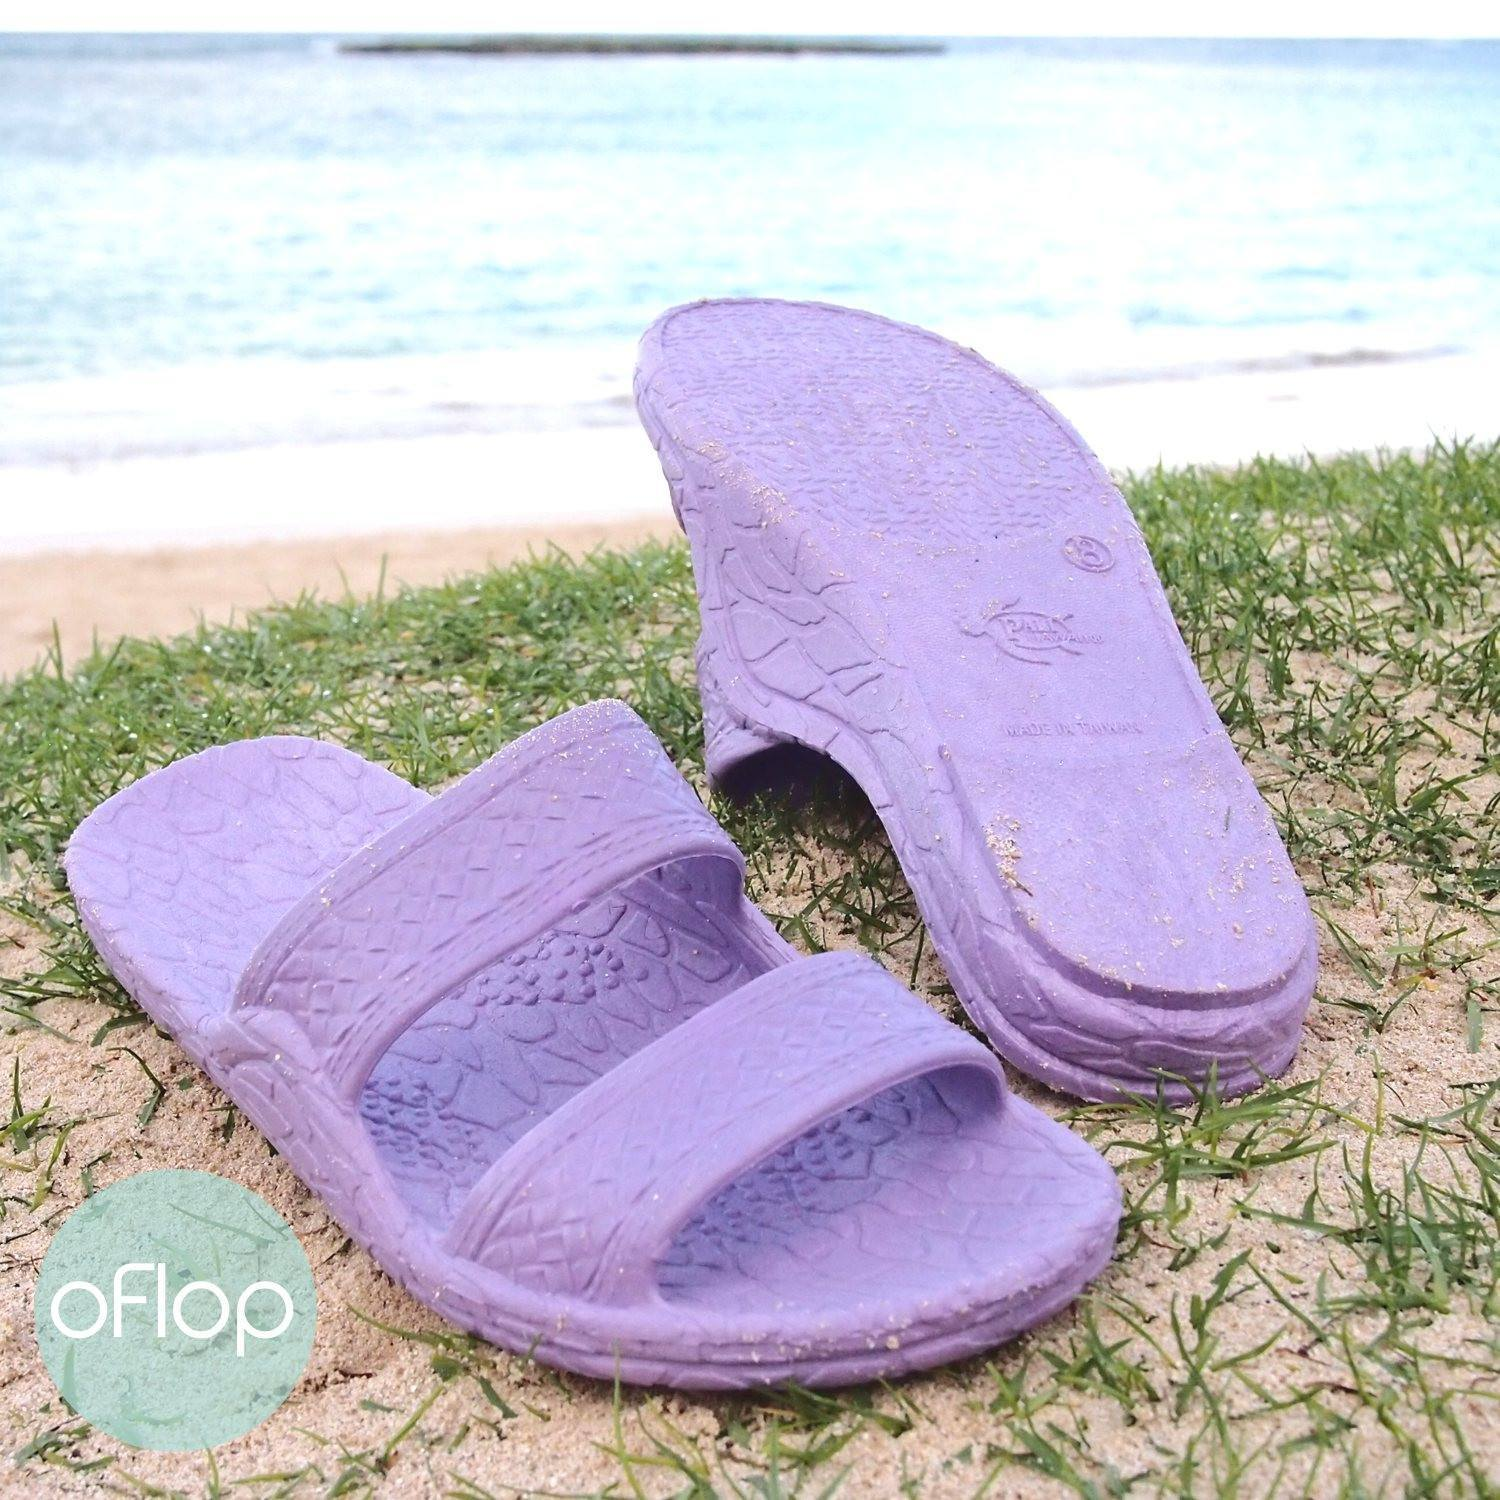 Sandals - Lilac Jandals -- Pali Hawaii Hawaiian Jesus Sandals